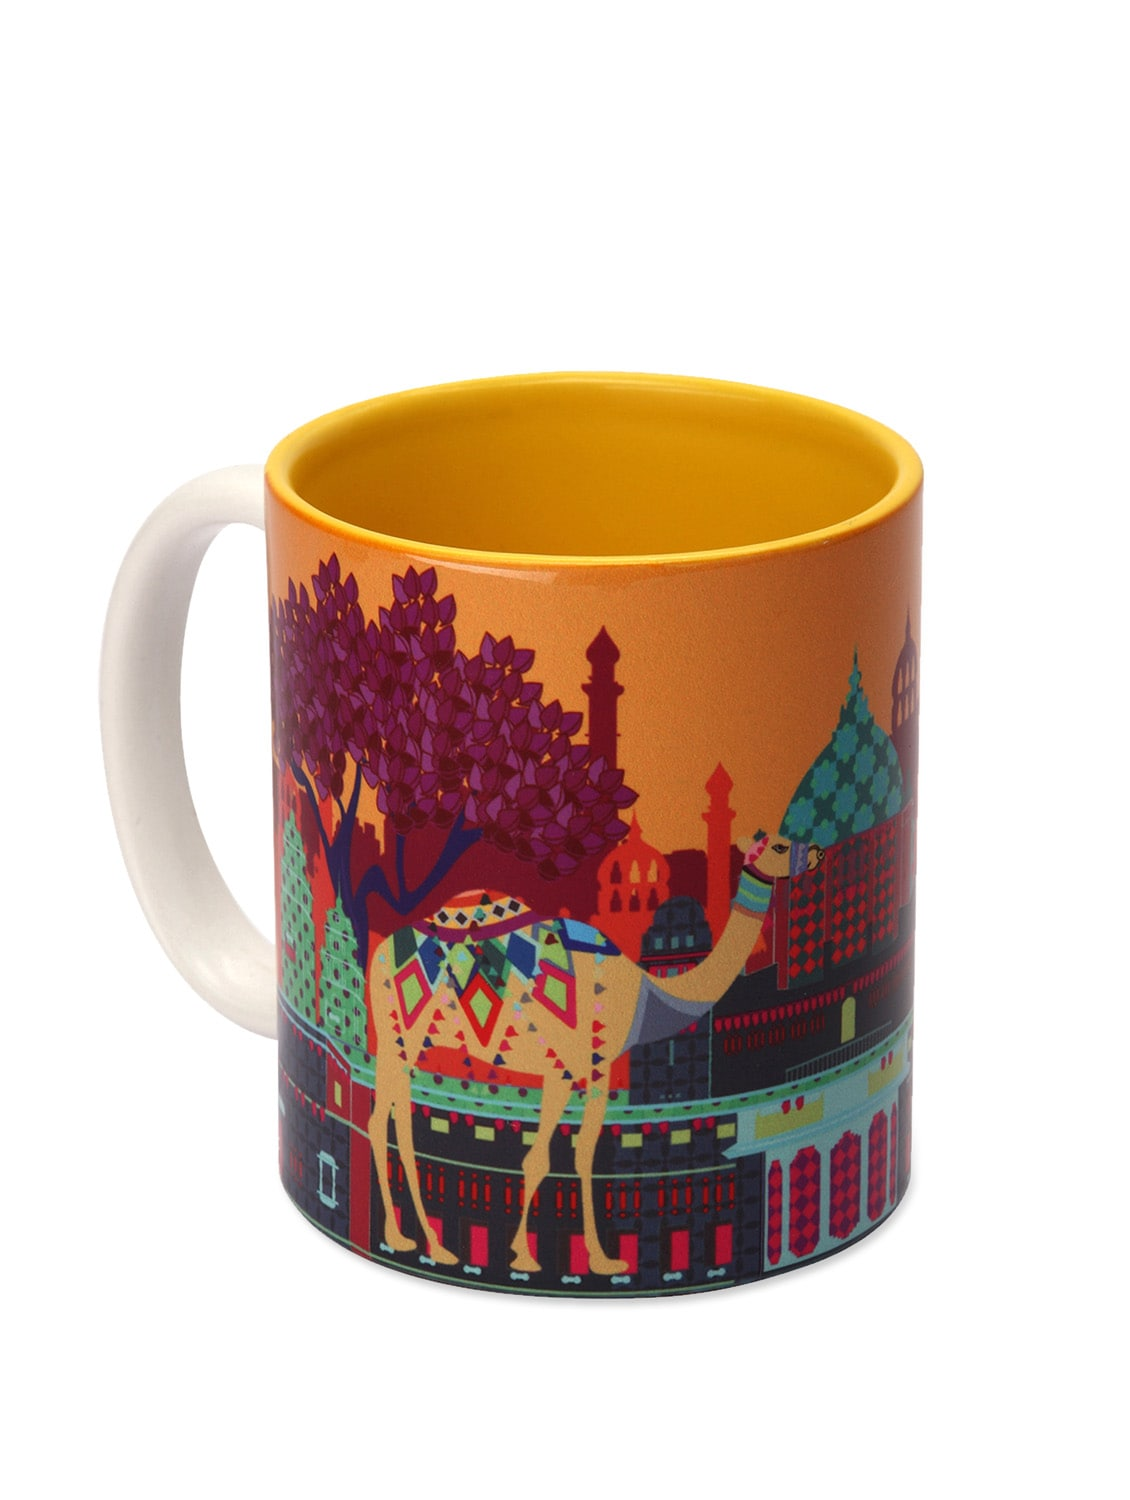 Ceramic Mug Indian Caravan Serai - The Elephant Company